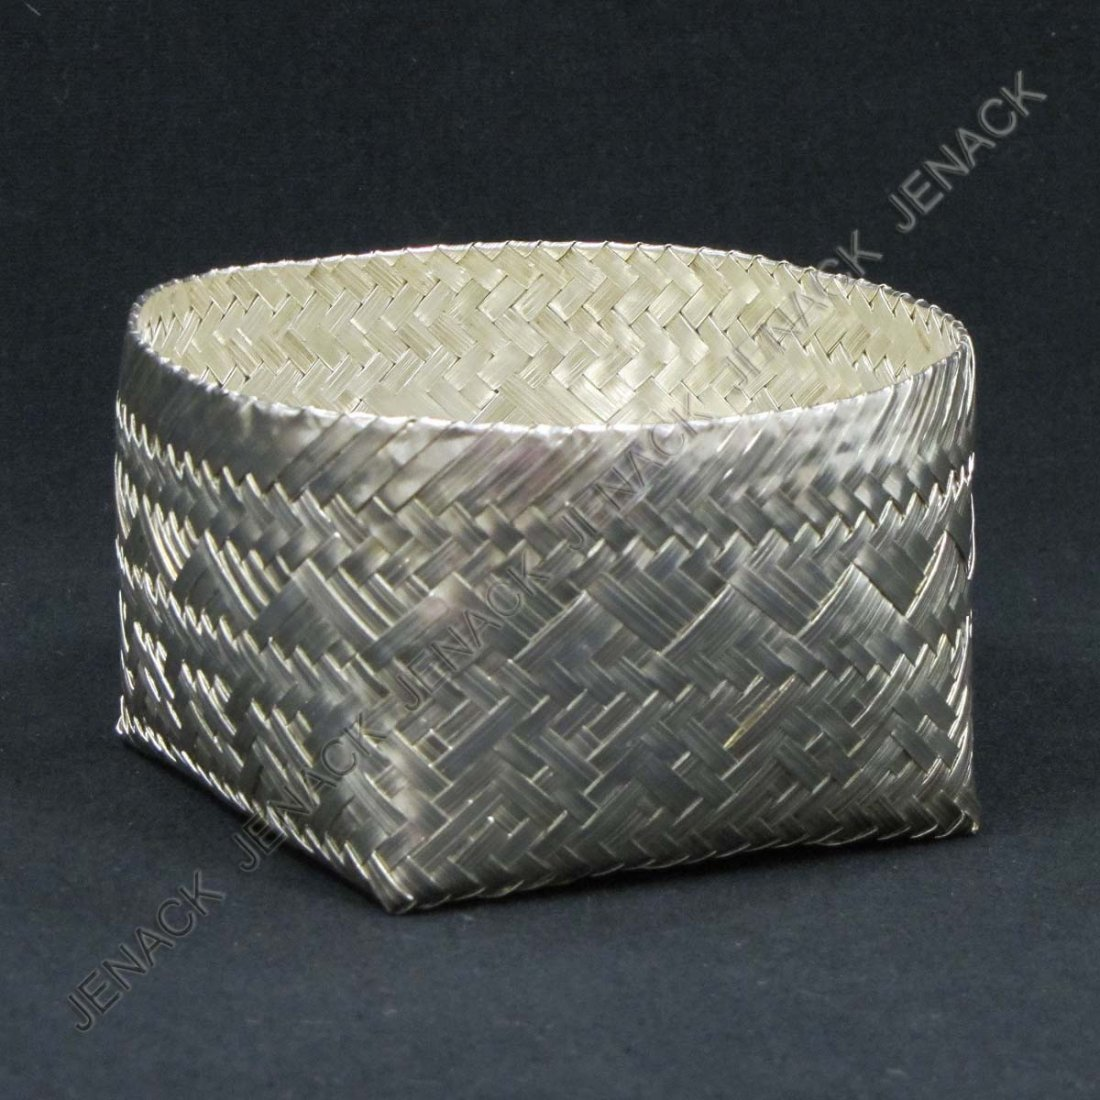 377: MEXICAN 925 STERLING WOVEN BASKET